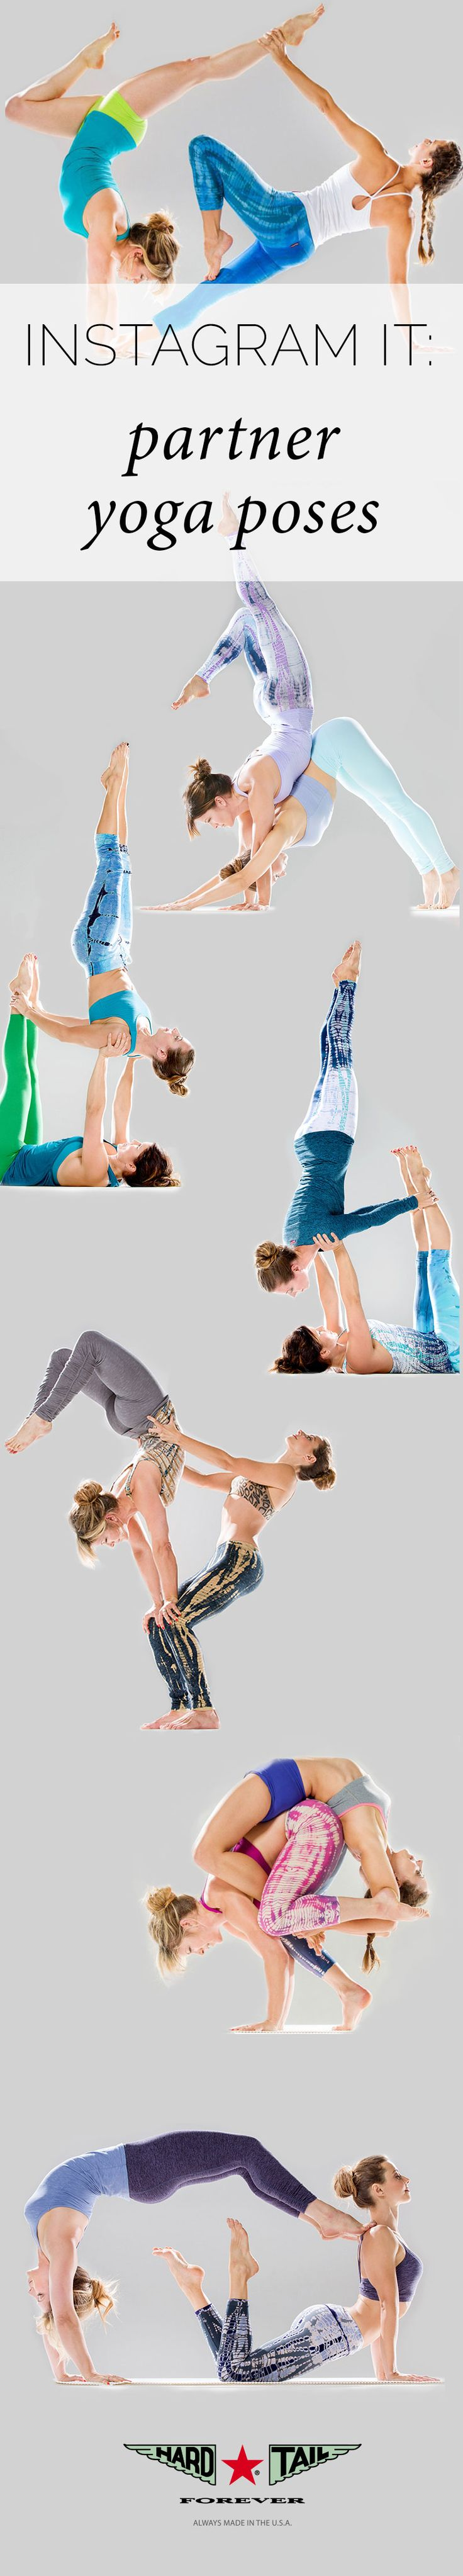 Grab a partner and challenge yourself to some of these unique partner yoga poses. Once you've mastered it, share it on Instagram!